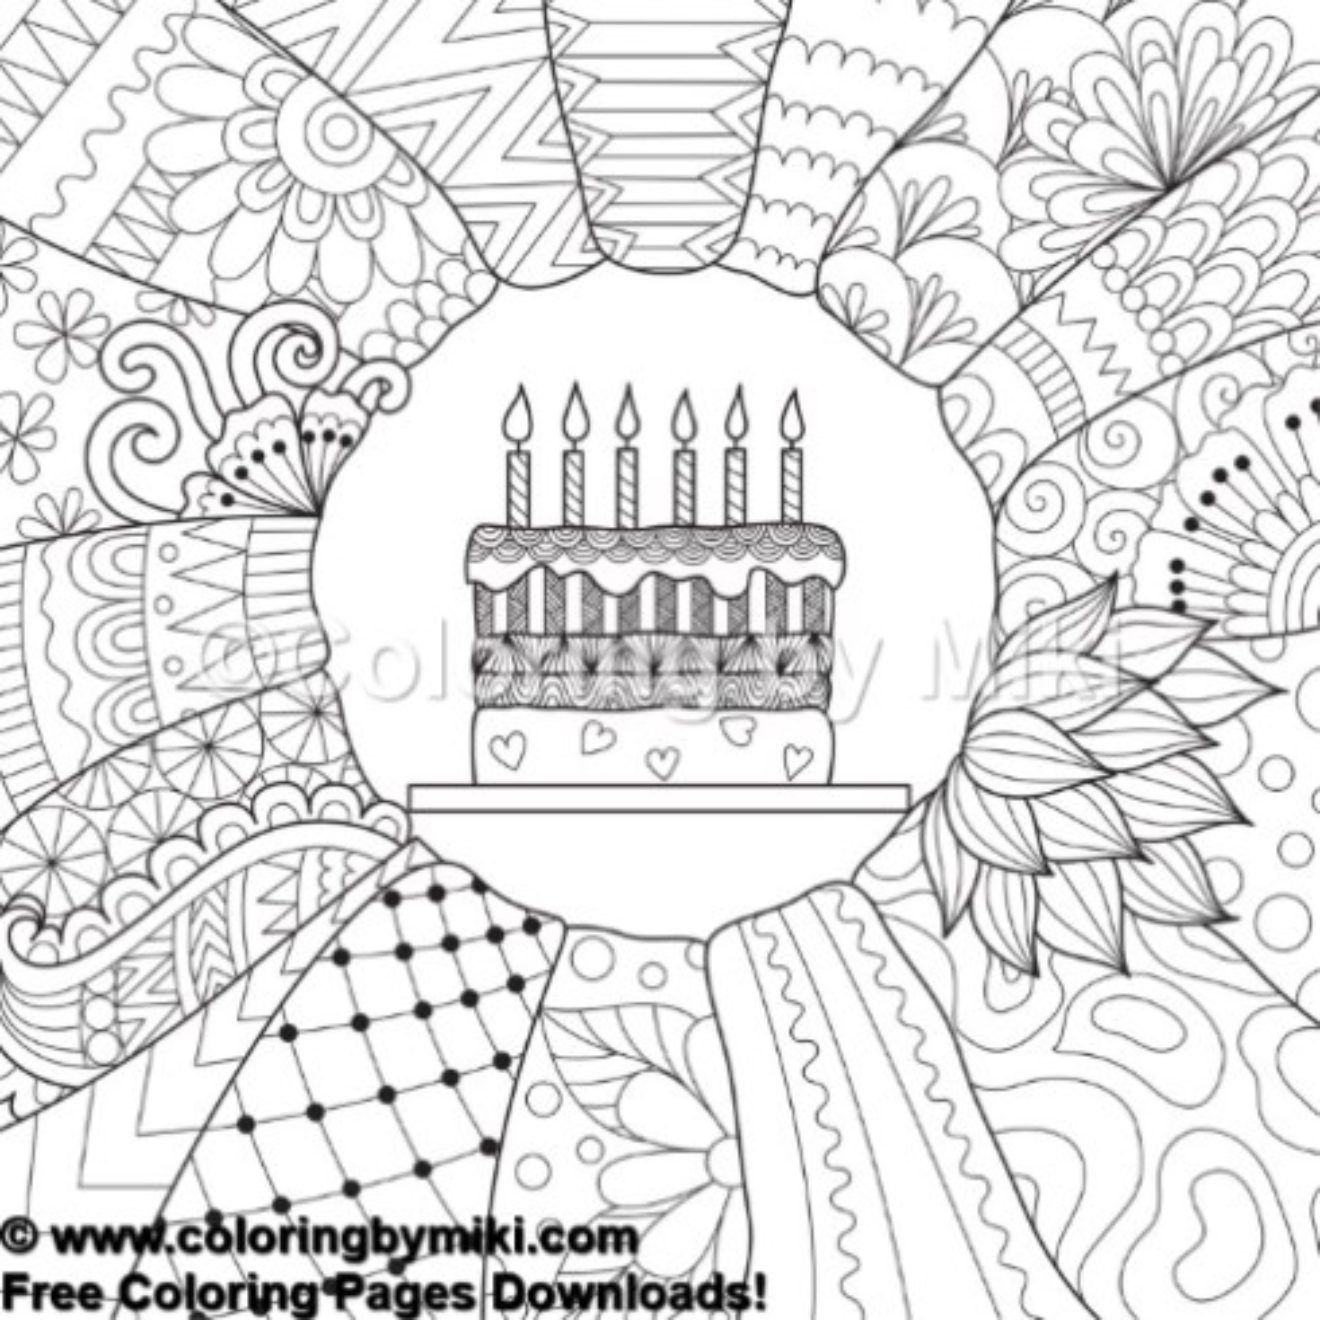 Happy Birthday Zentangle Cake Coloring Page 738 Free Coloring Pages Coloring Pages Coloring Books